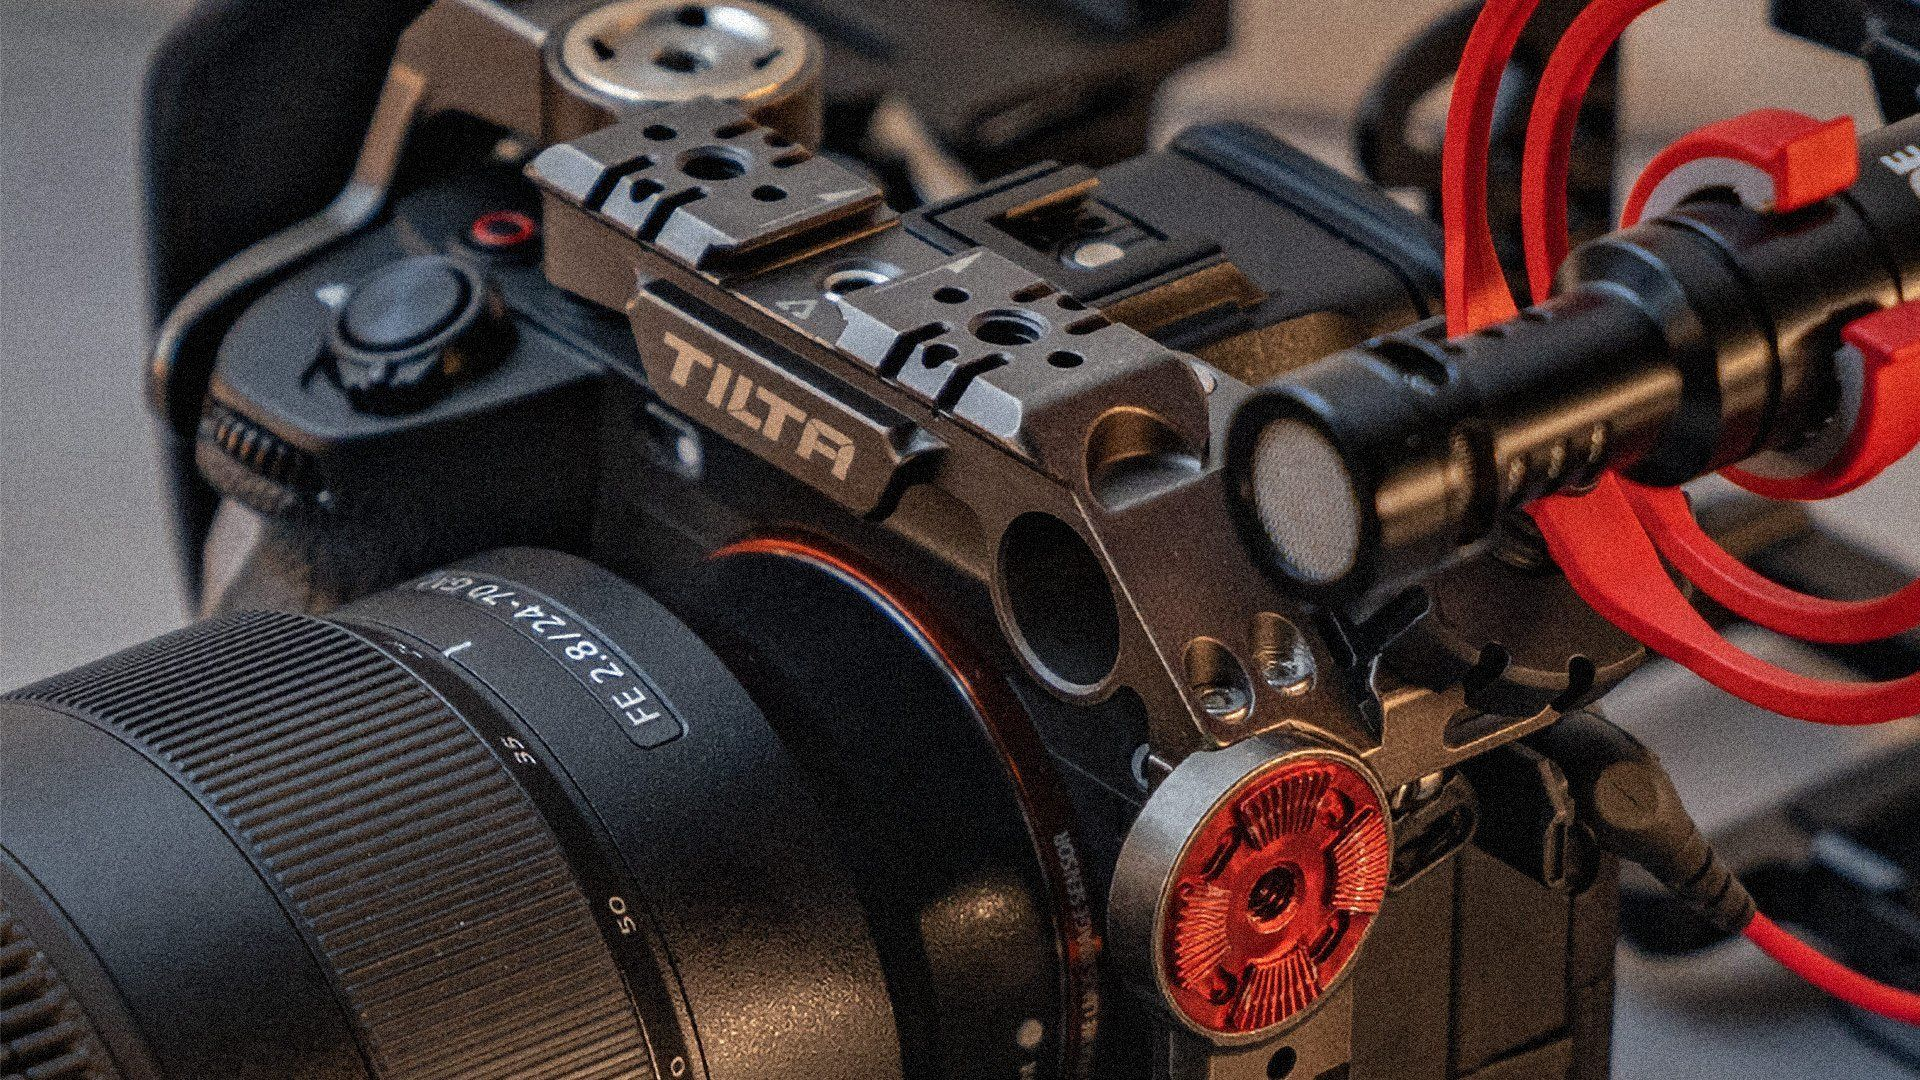 for A7sIII Cage